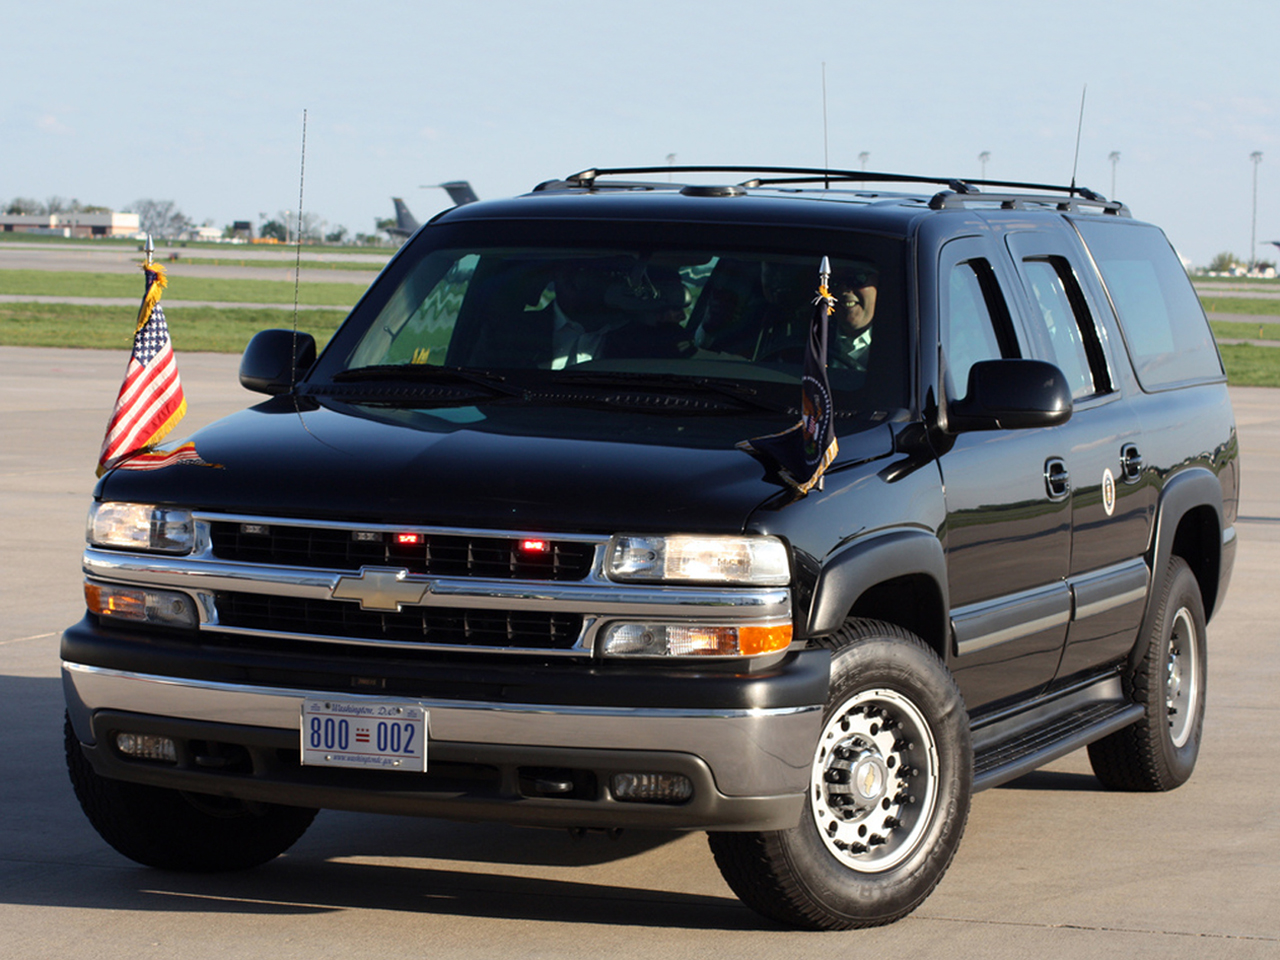 Suburban 2005 chevrolet suburban : 2005 Chevrolet Suburban (gmt800) – pictures, information and specs ...